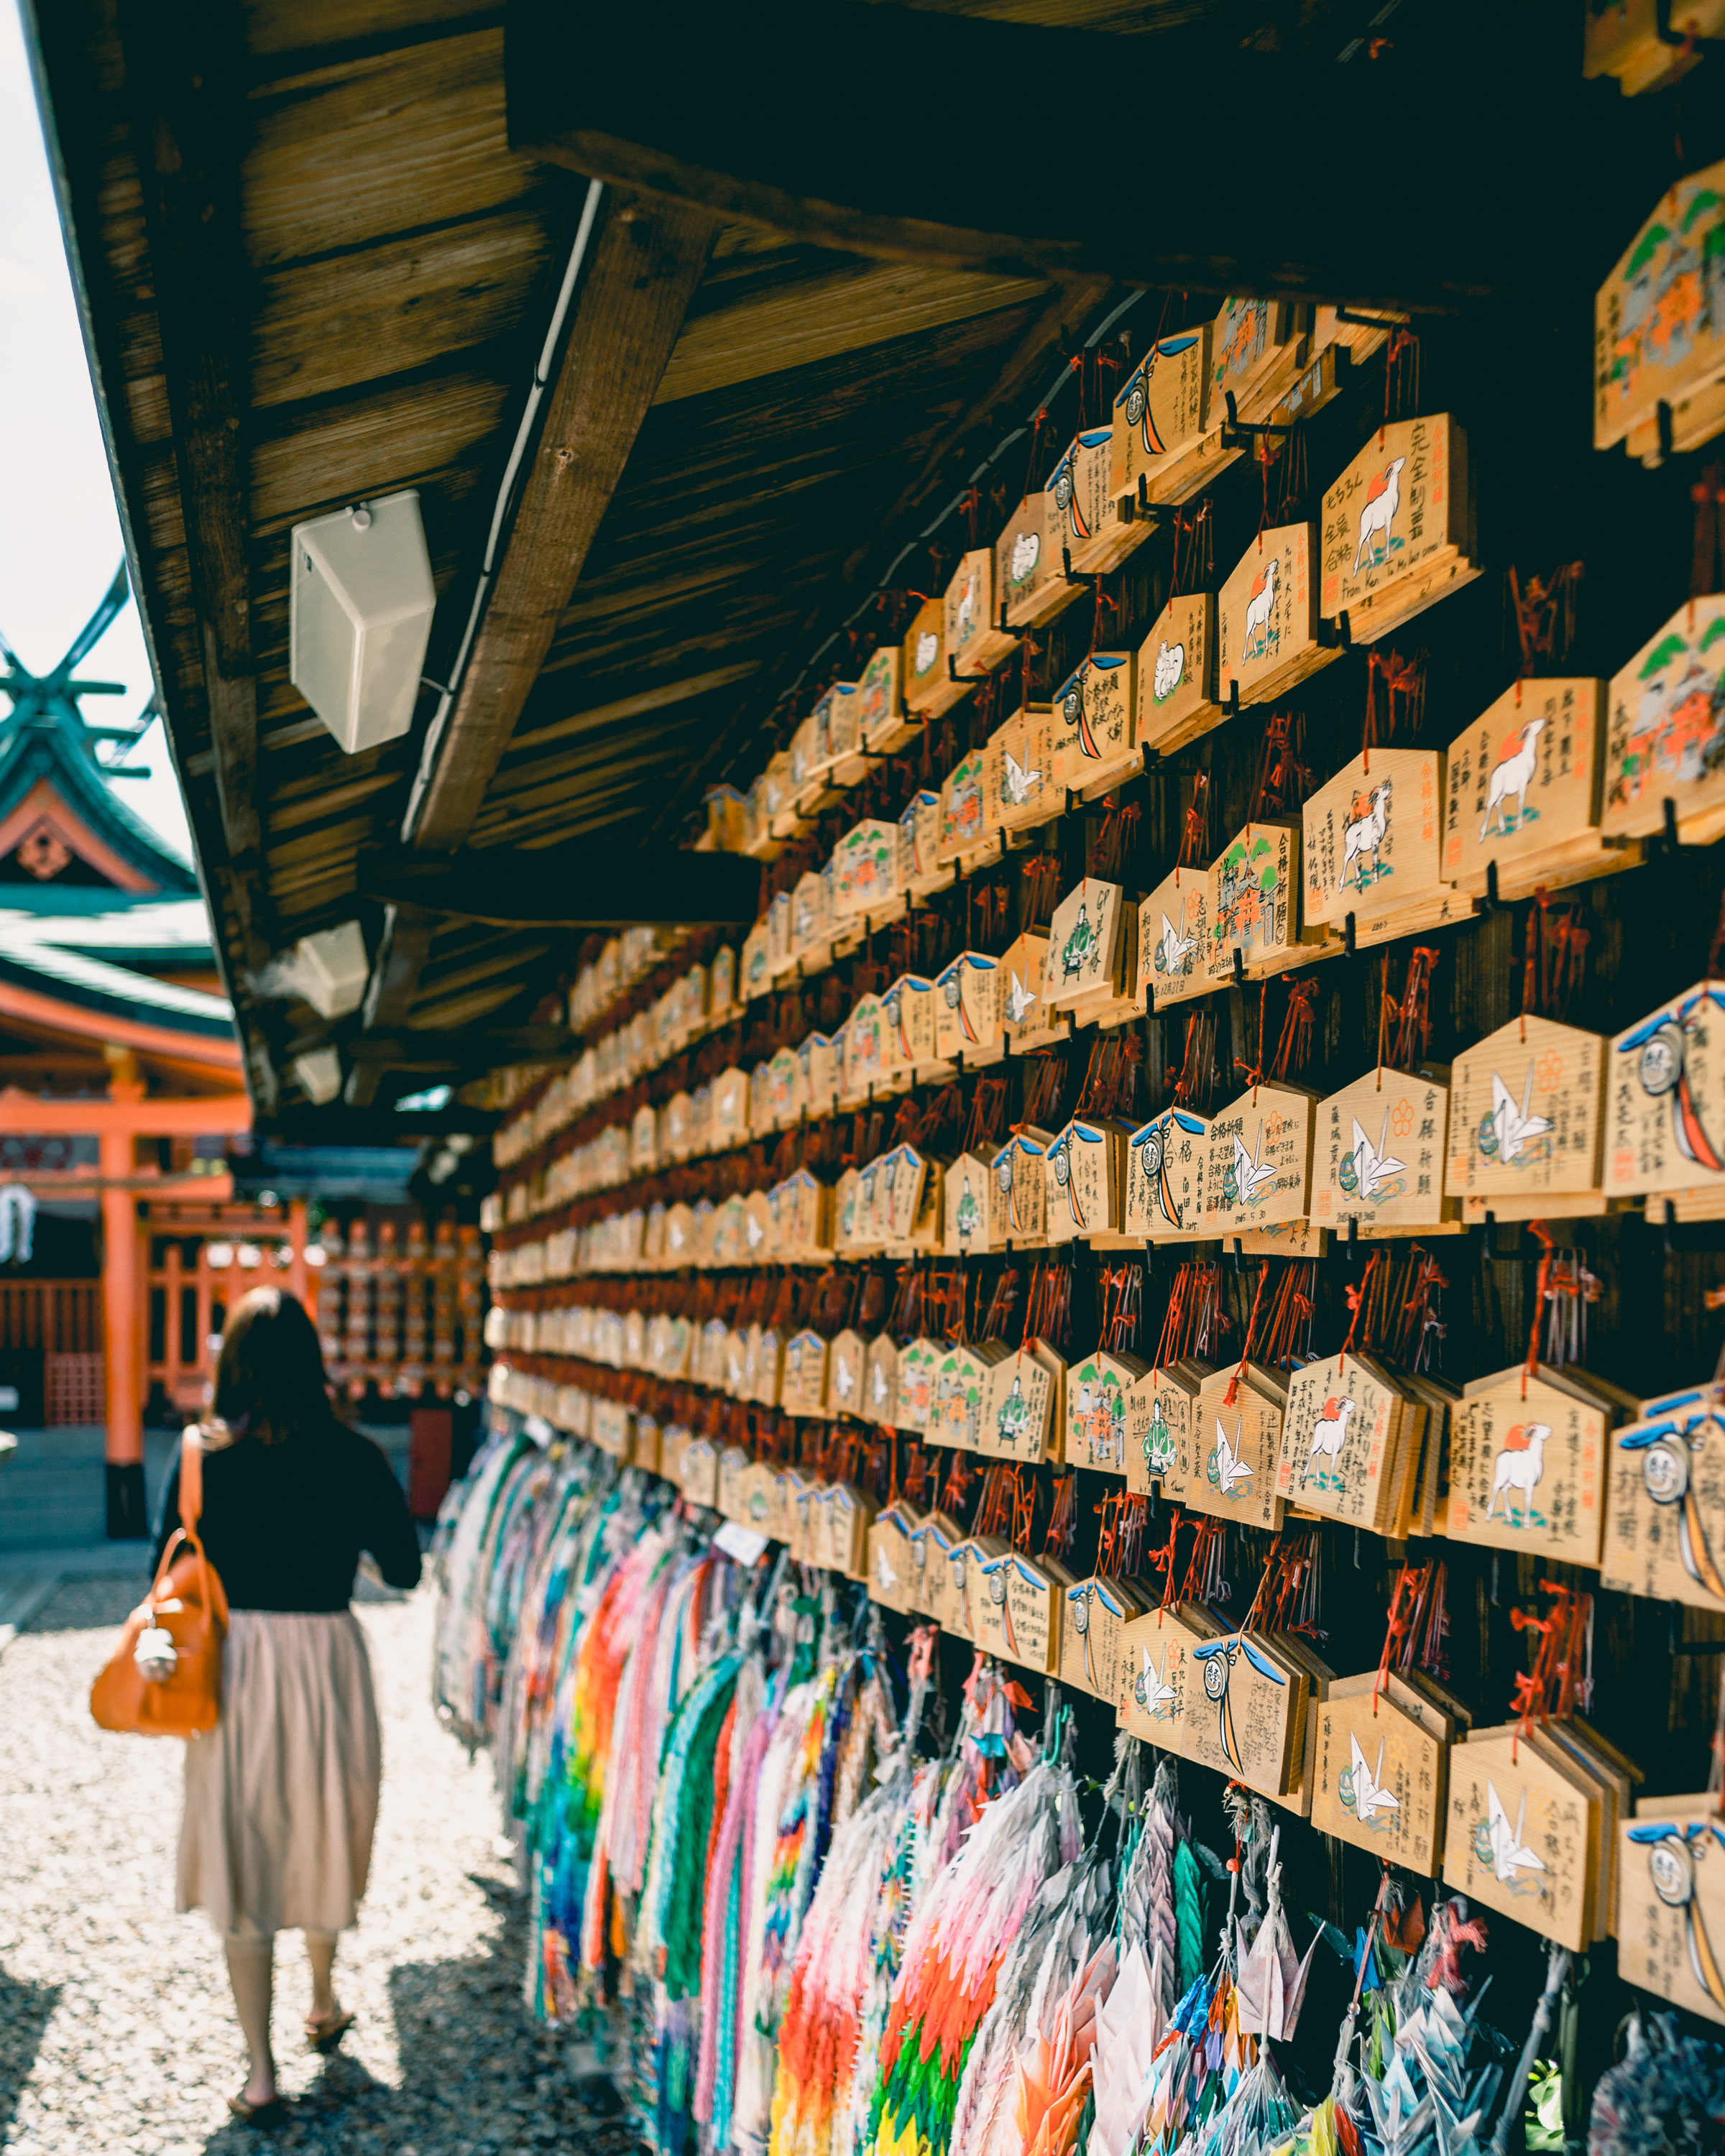 """""""Ema"""" (絵馬) hung up near a shrine at Fushimi Inari, Kyoto, Japan. These wooden plaques are hung by Shinto worshippers, detailing their prayers and wishes."""